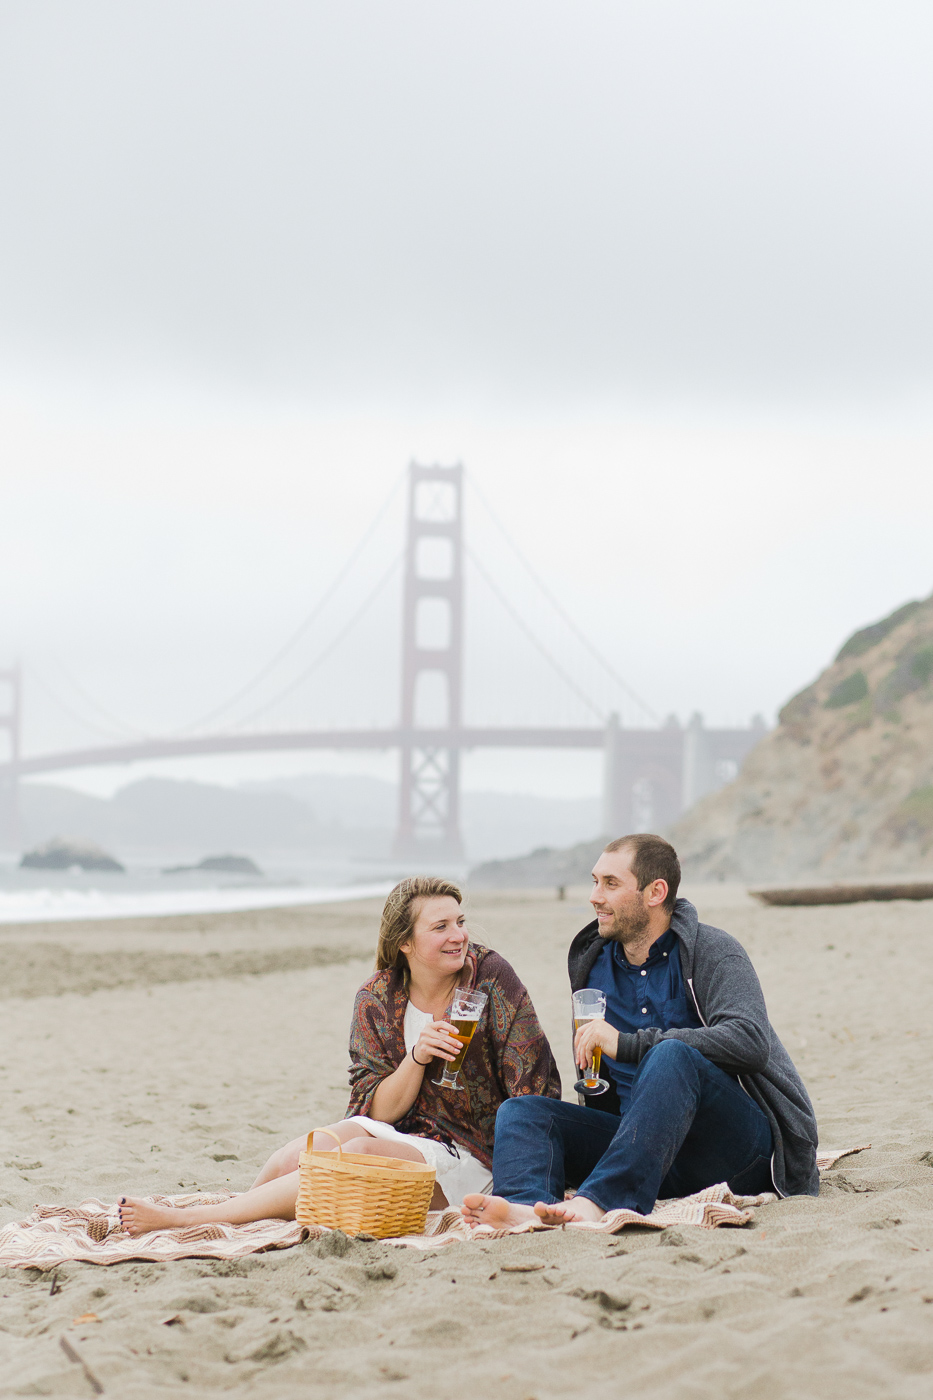 Baker-beach-san-francisco-california-engagement-session-9.jpg